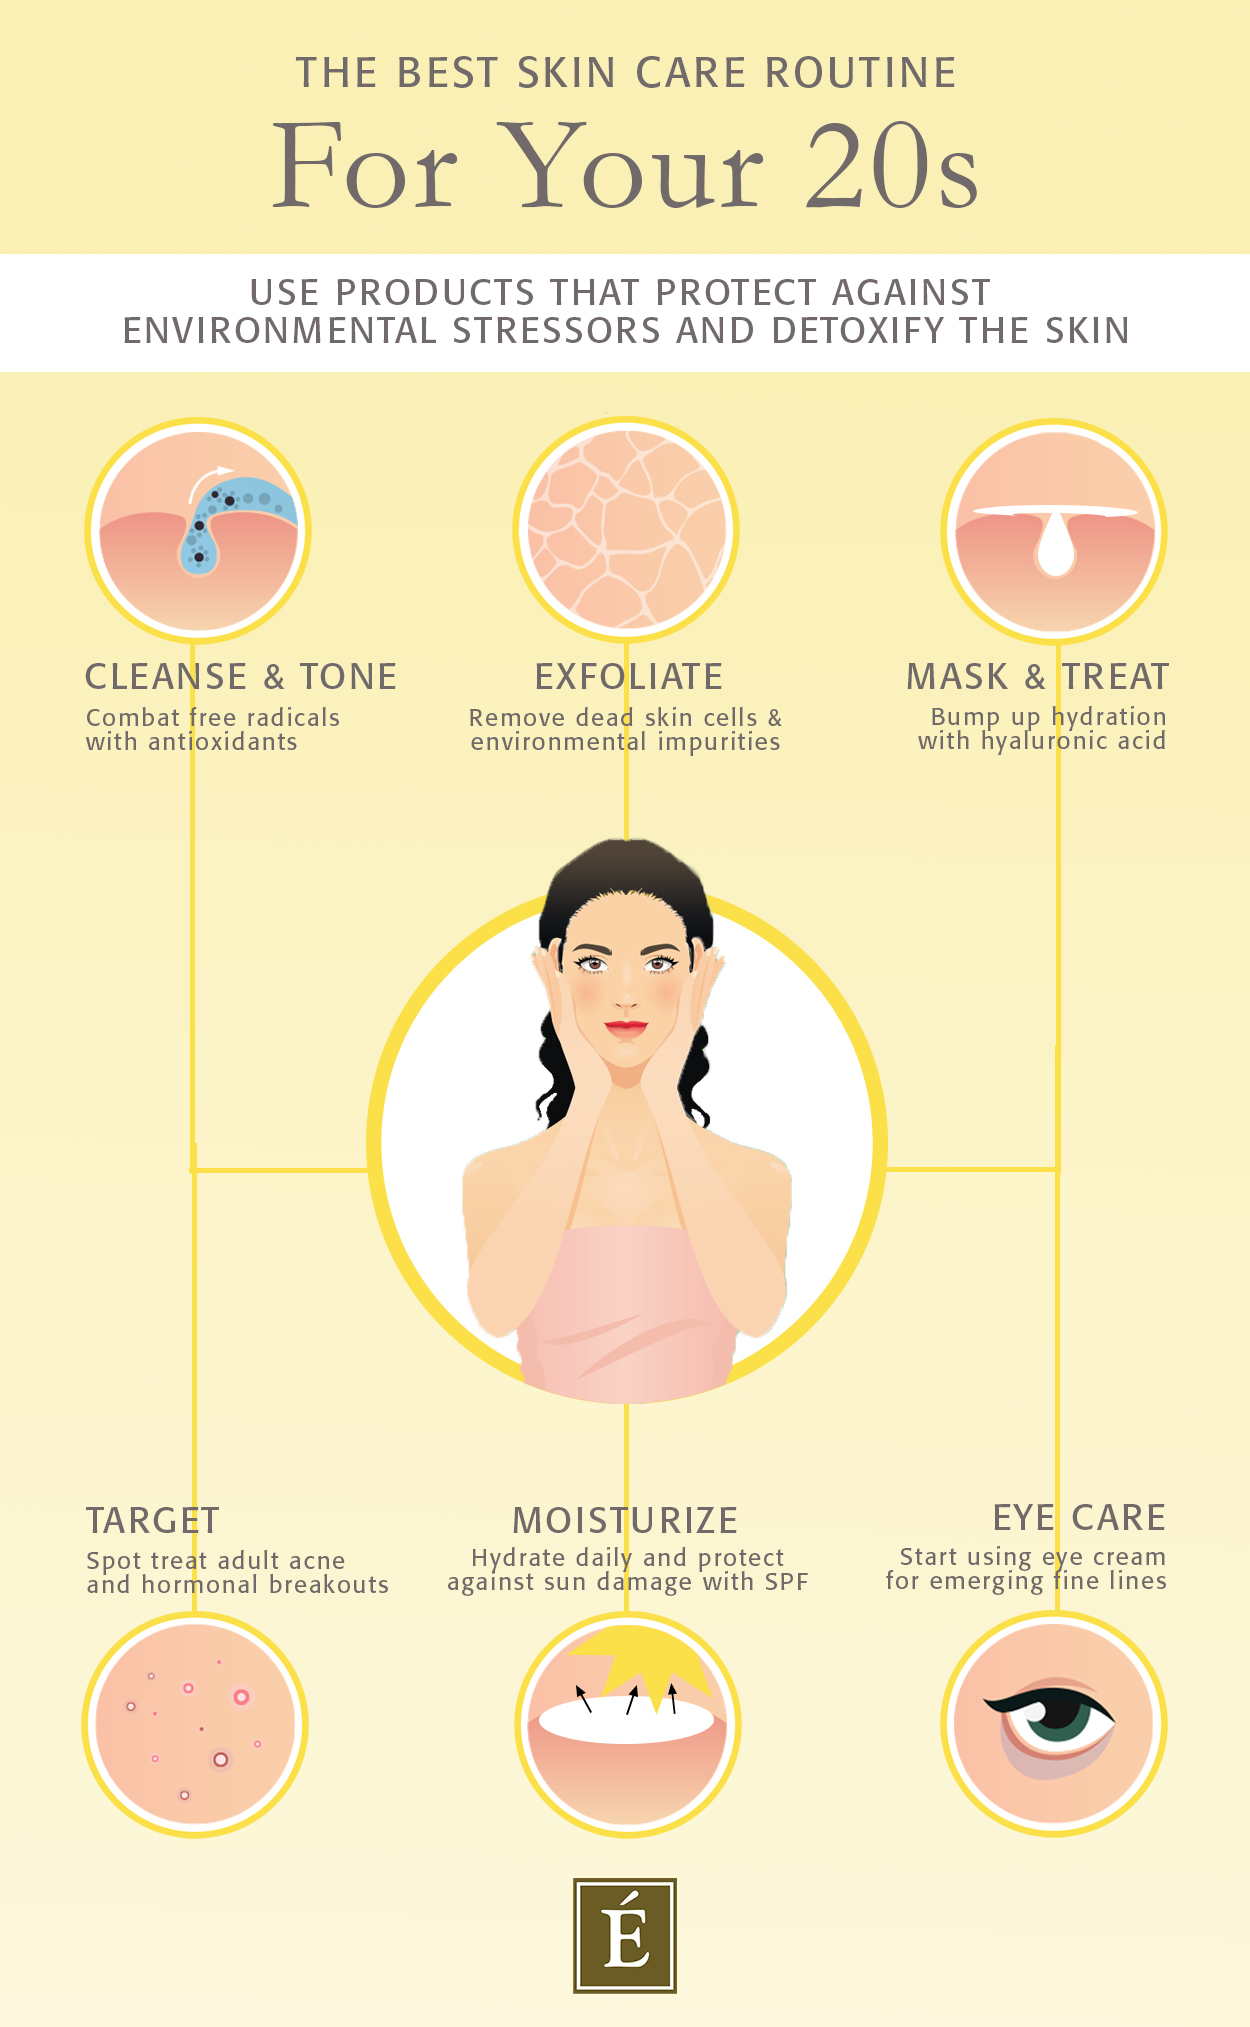 Infographic for the best skin care routine for your 20s